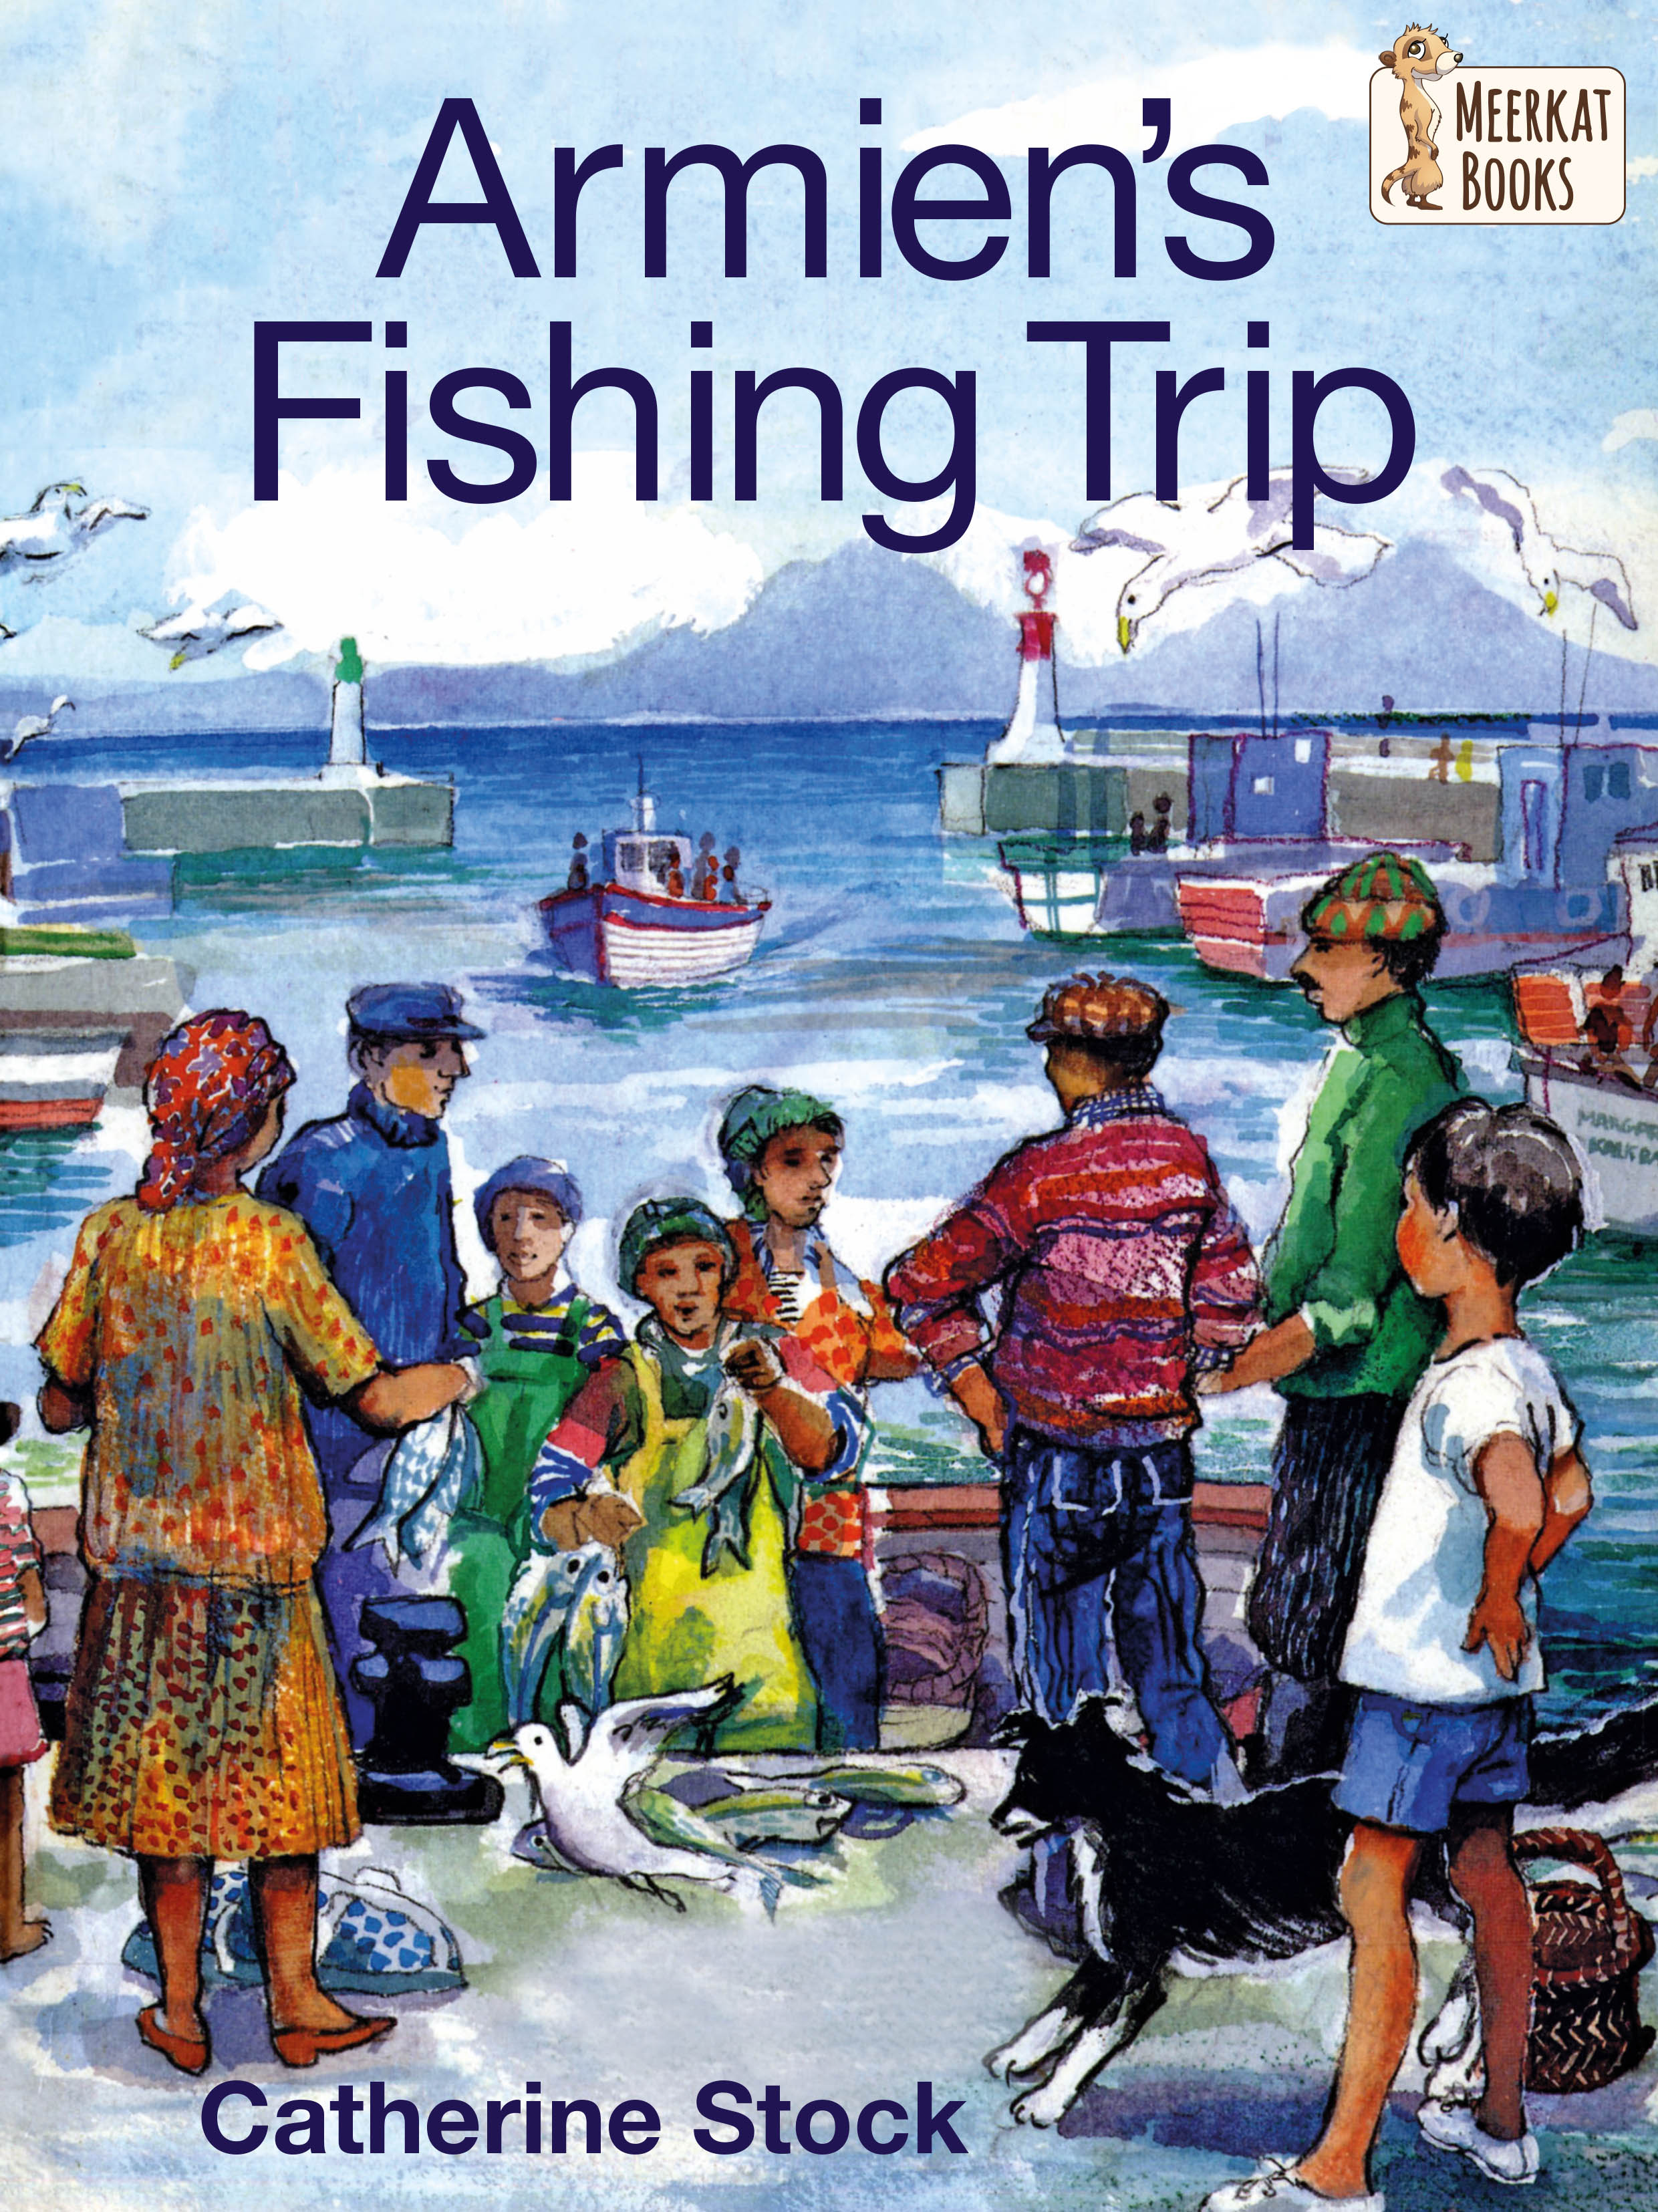 Armien's Fishing Trip Catherine Stock New Africa Books